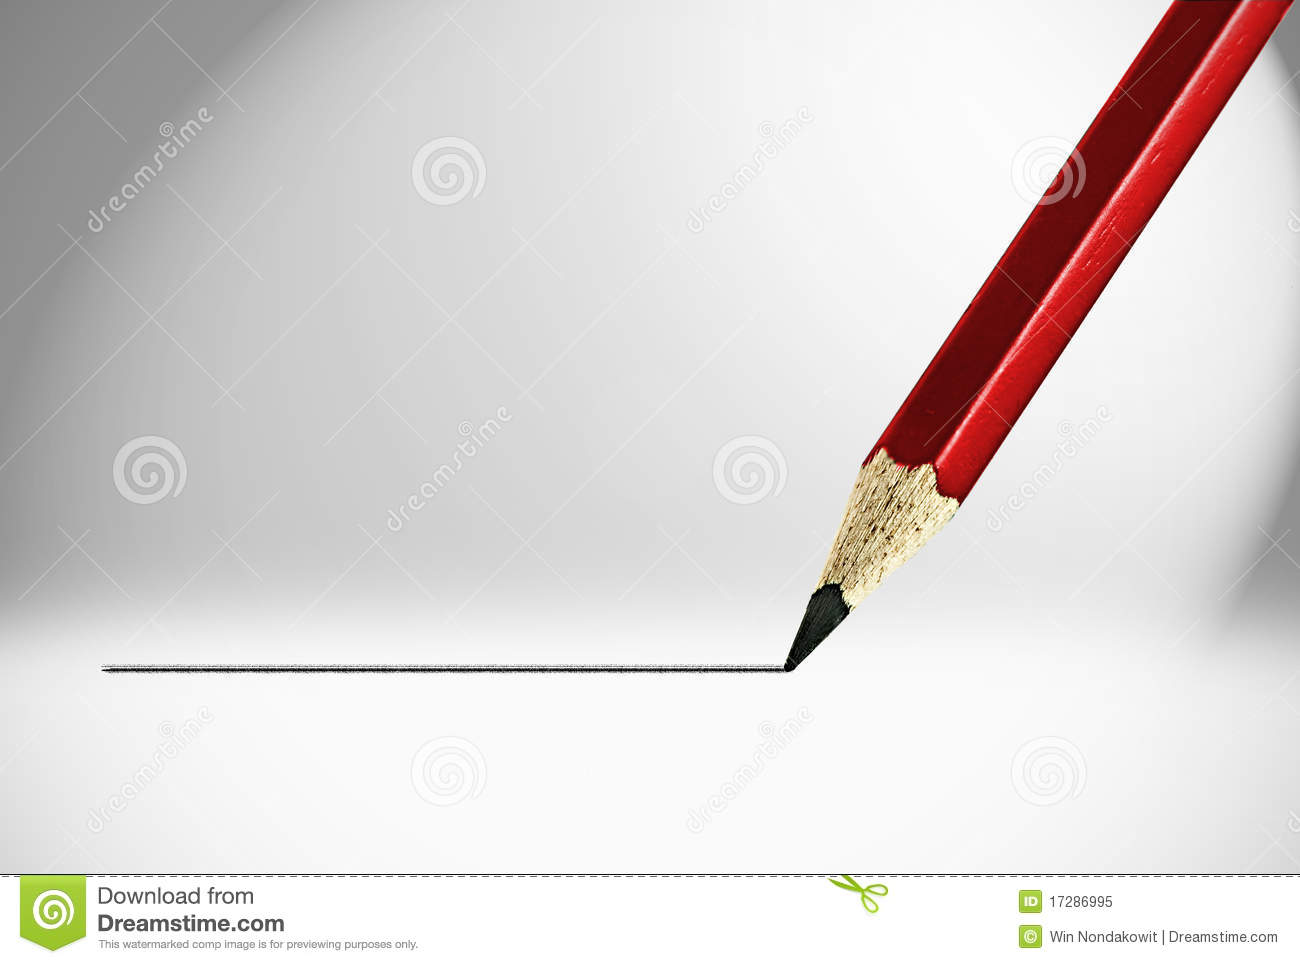 Underline Royalty Free Stock Photo - Image: 17286995